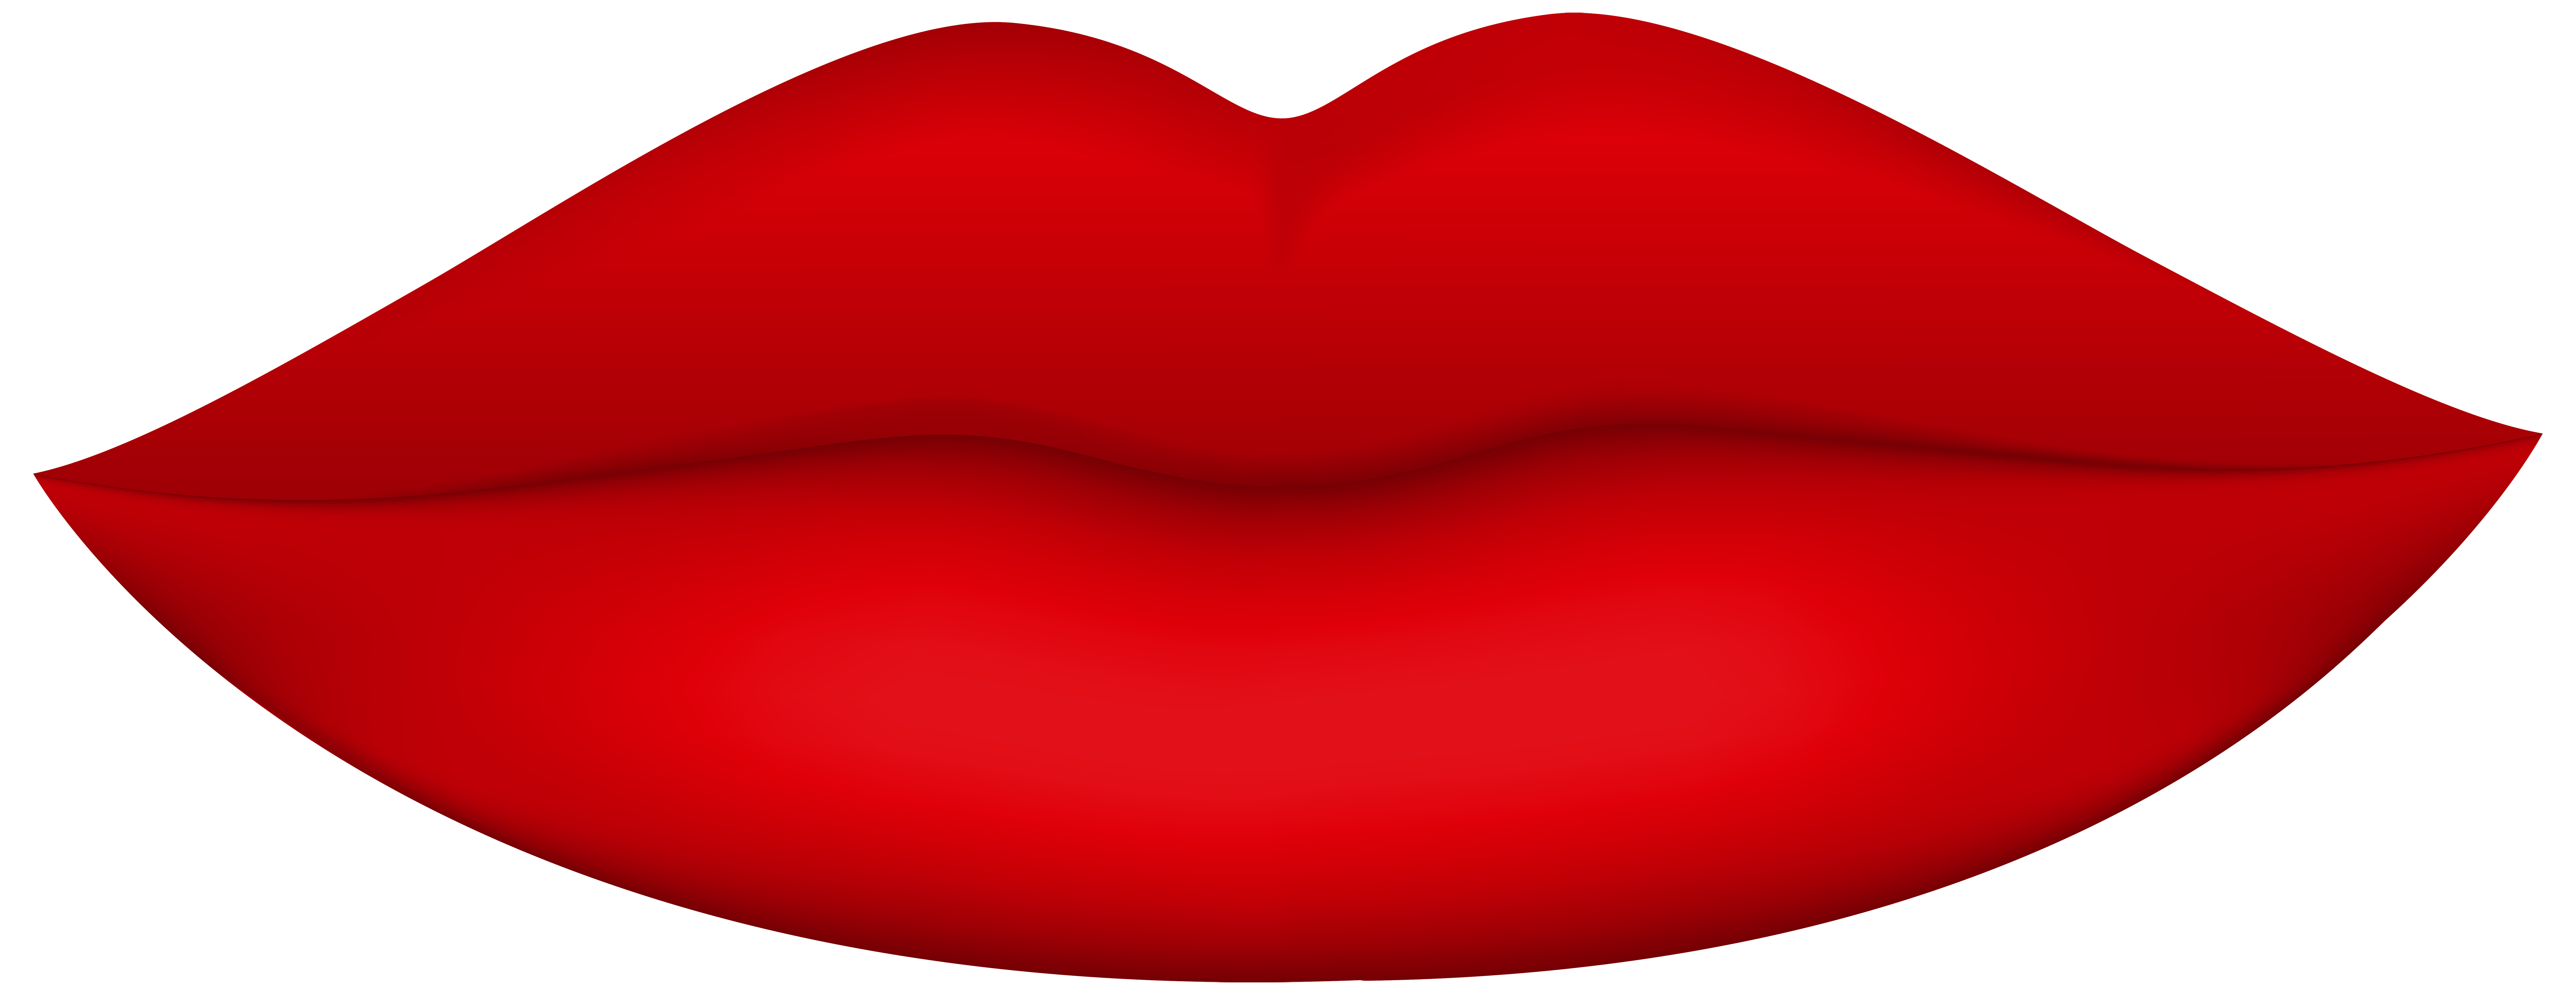 Red Lips PNG Clip Art-Red Lips PNG Clip Art-6